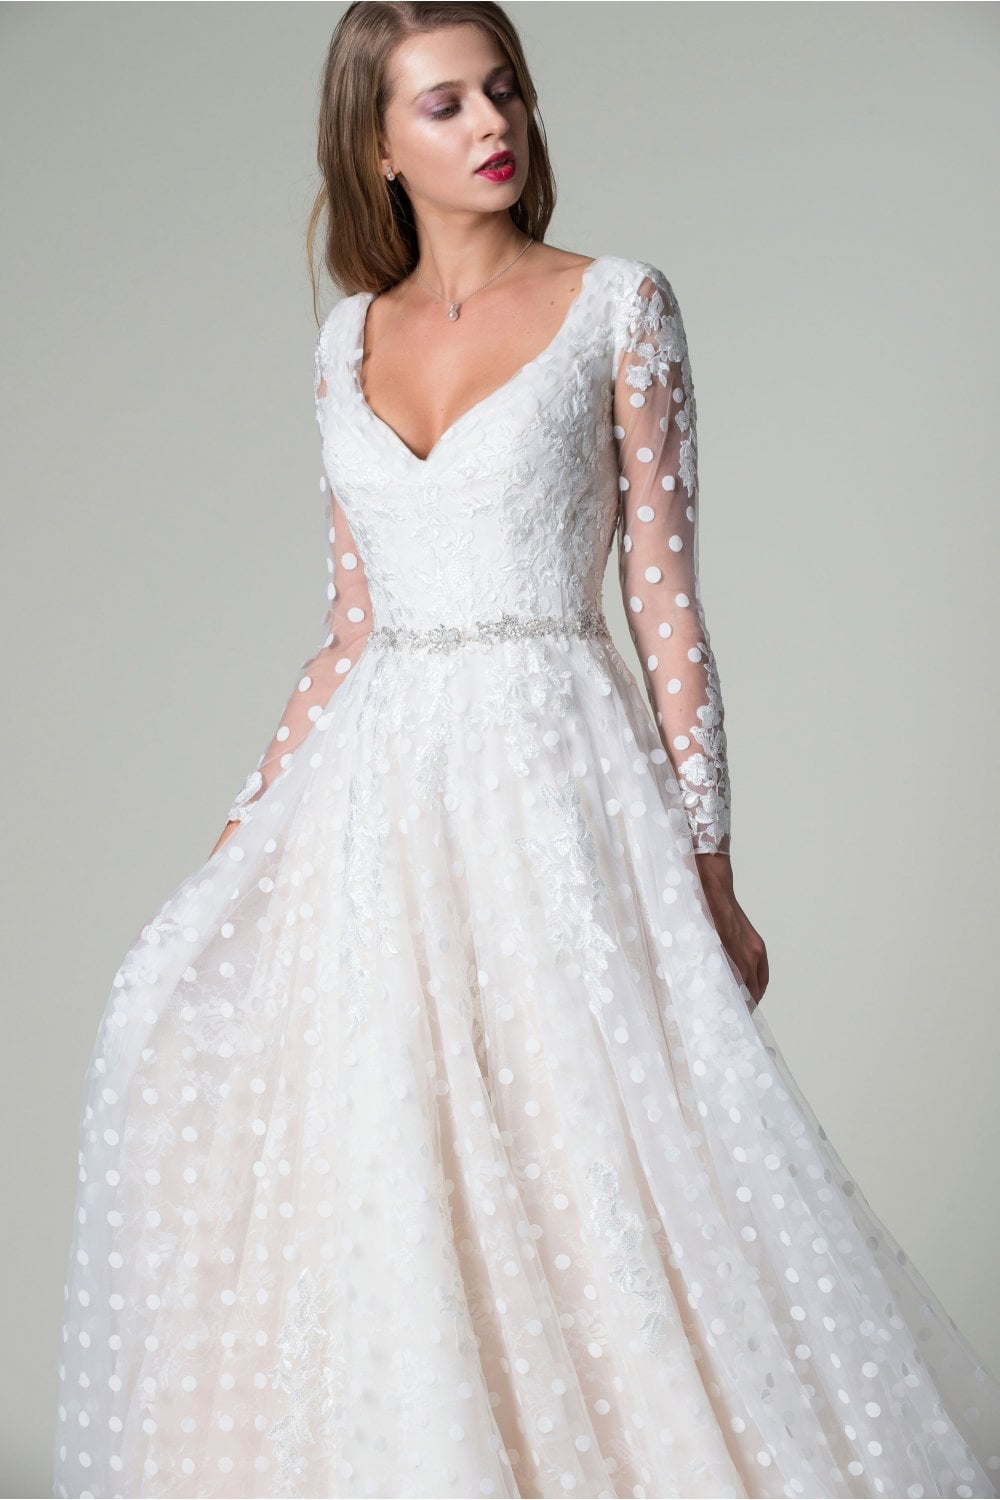 Tyne Is An Elegant Long Sleeved Wedding Gown With Lace And Polka Dot Skirt